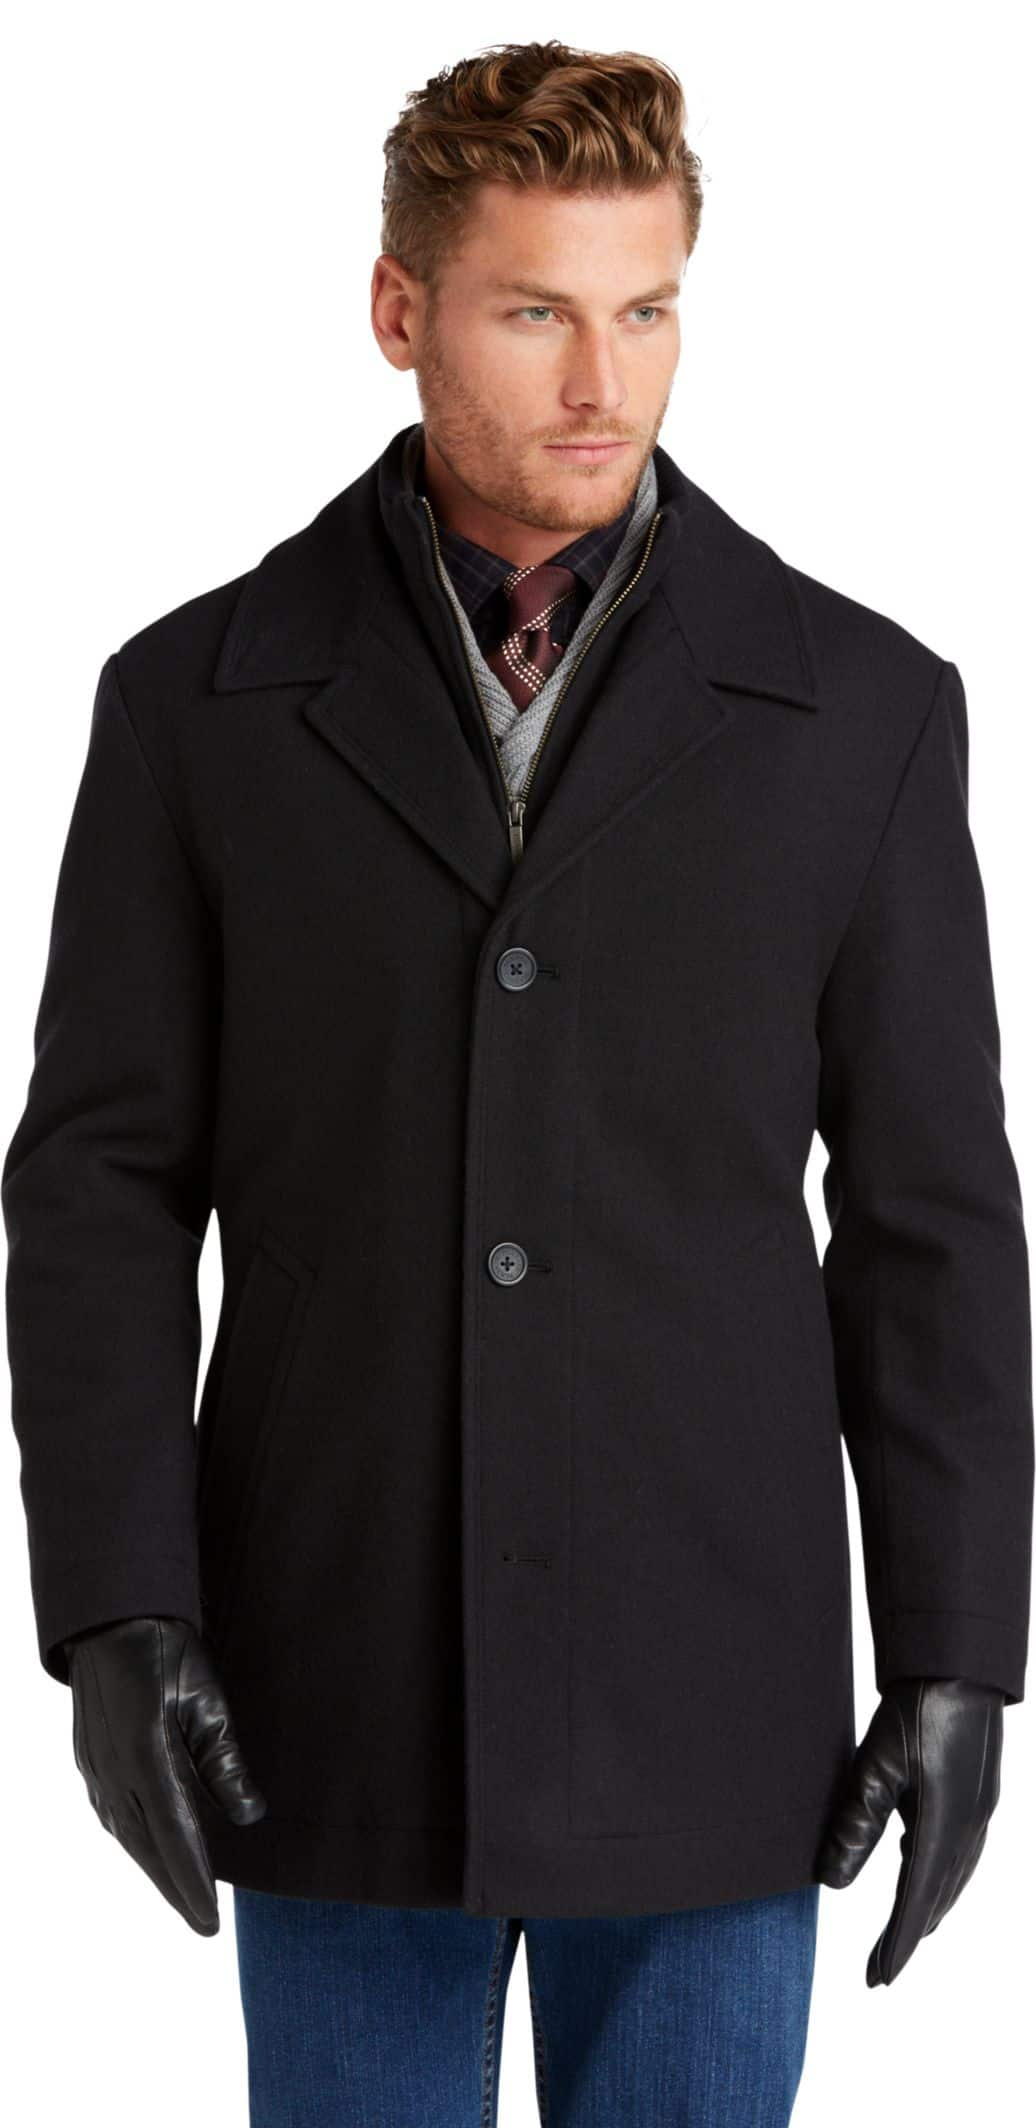 Jos A Bank Outerwear Sale: Casual Coats $69, Wool Coats $79, Topcoats $99 & More + Free S/H